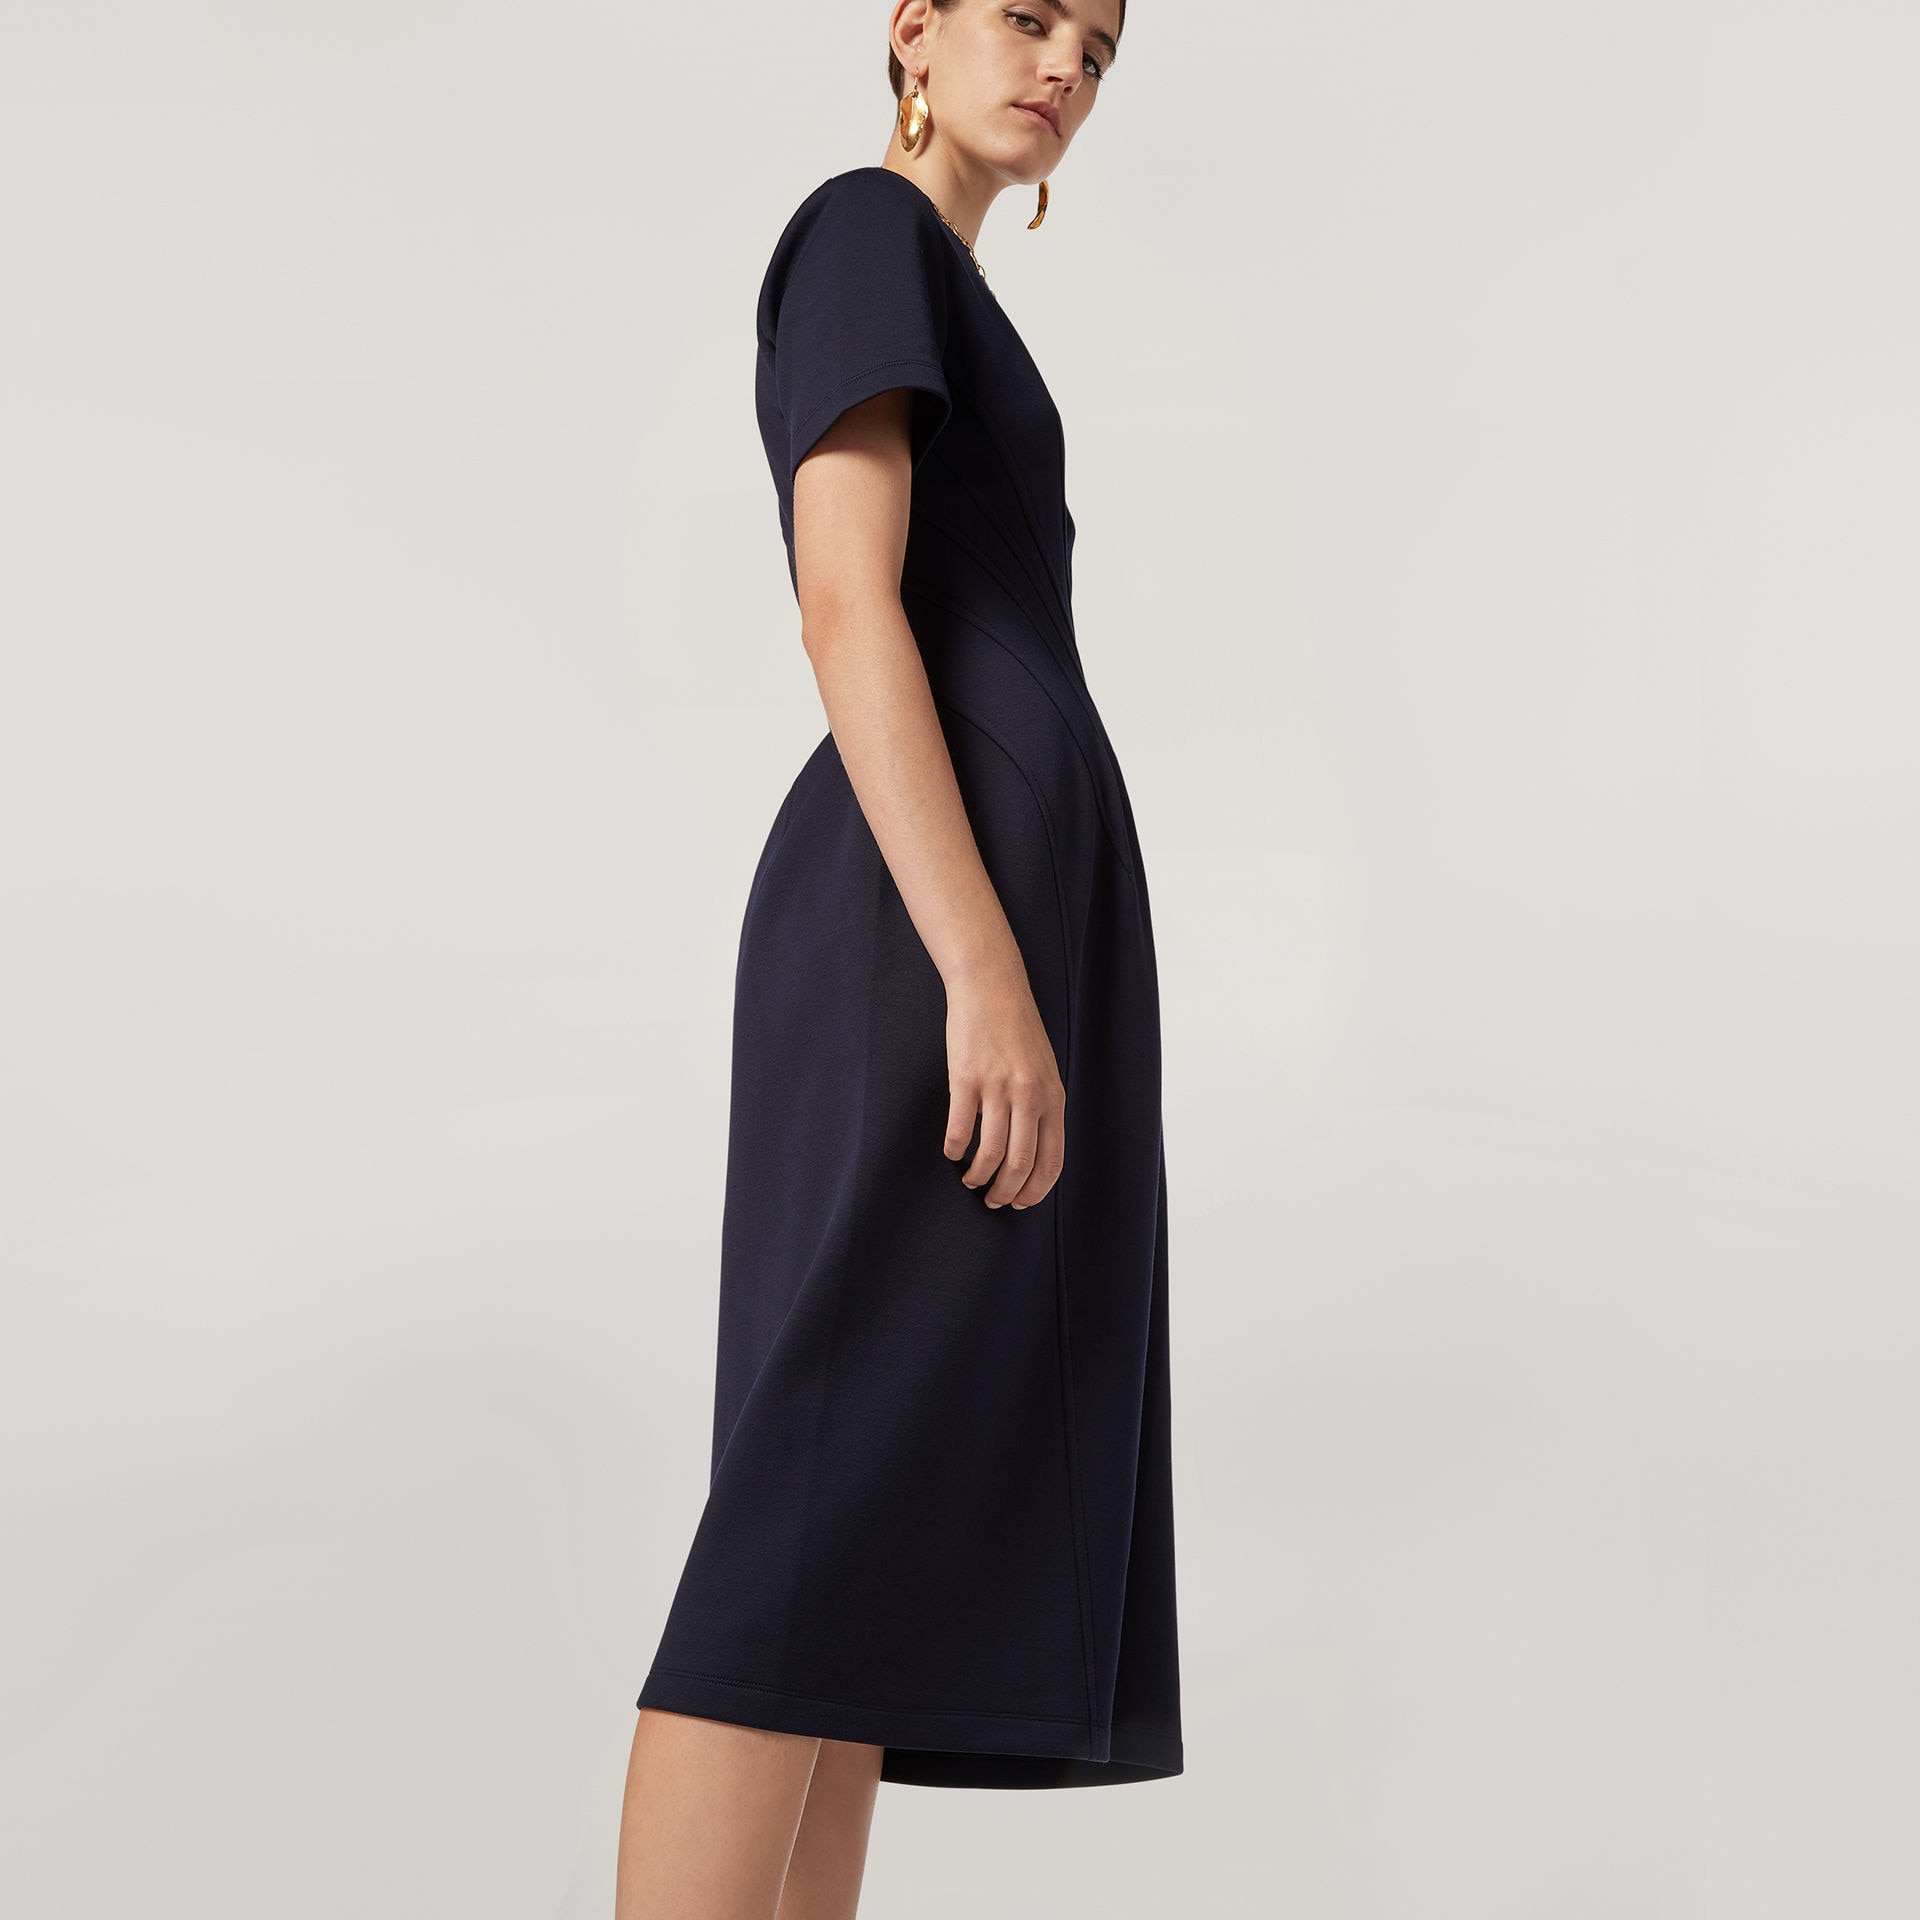 Model wears a blue dress from the Resort 2020 collection